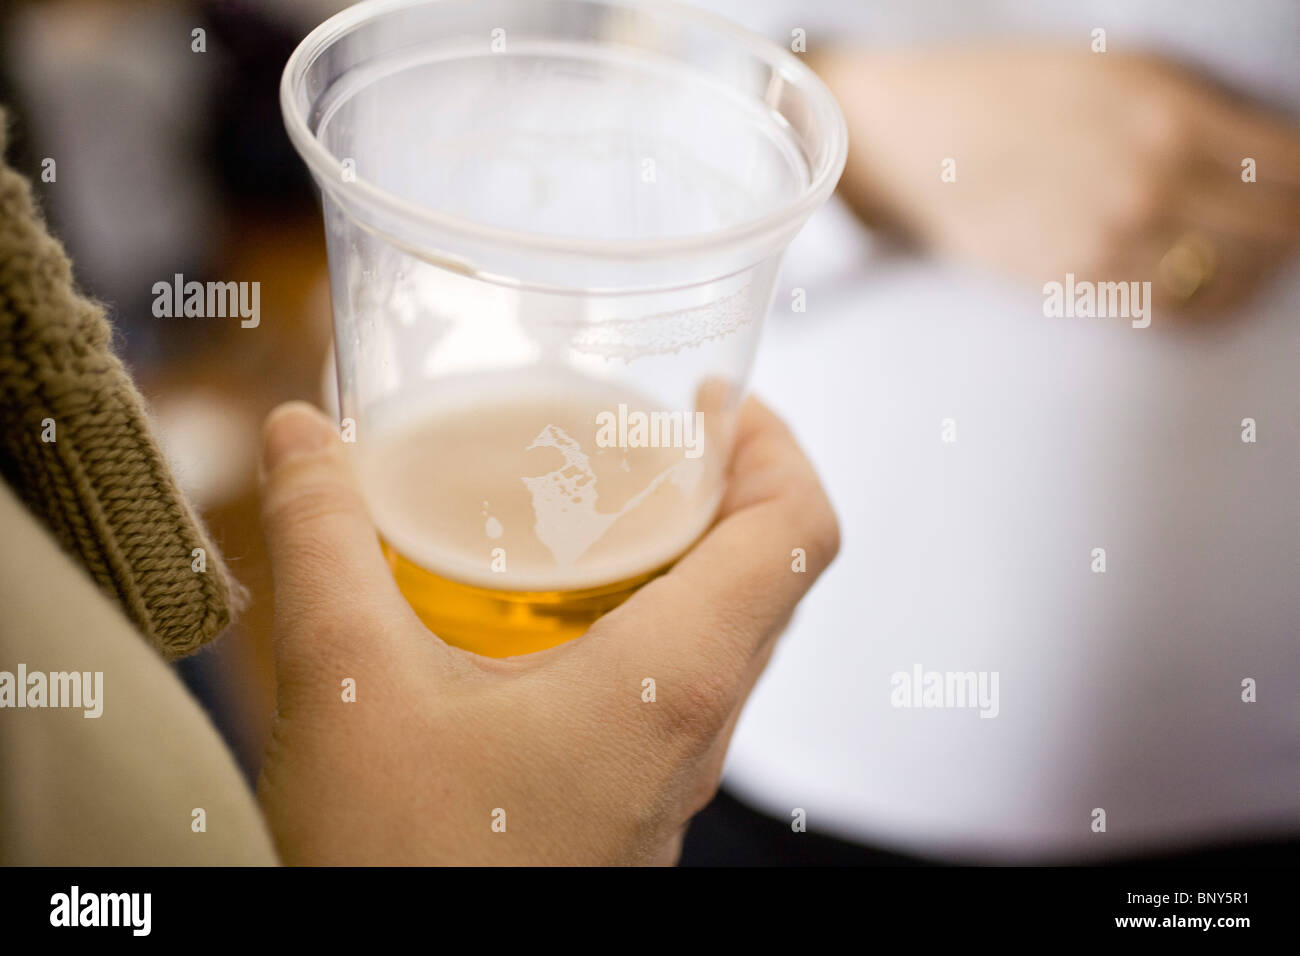 Person holding beer in plastic cup - Stock Image